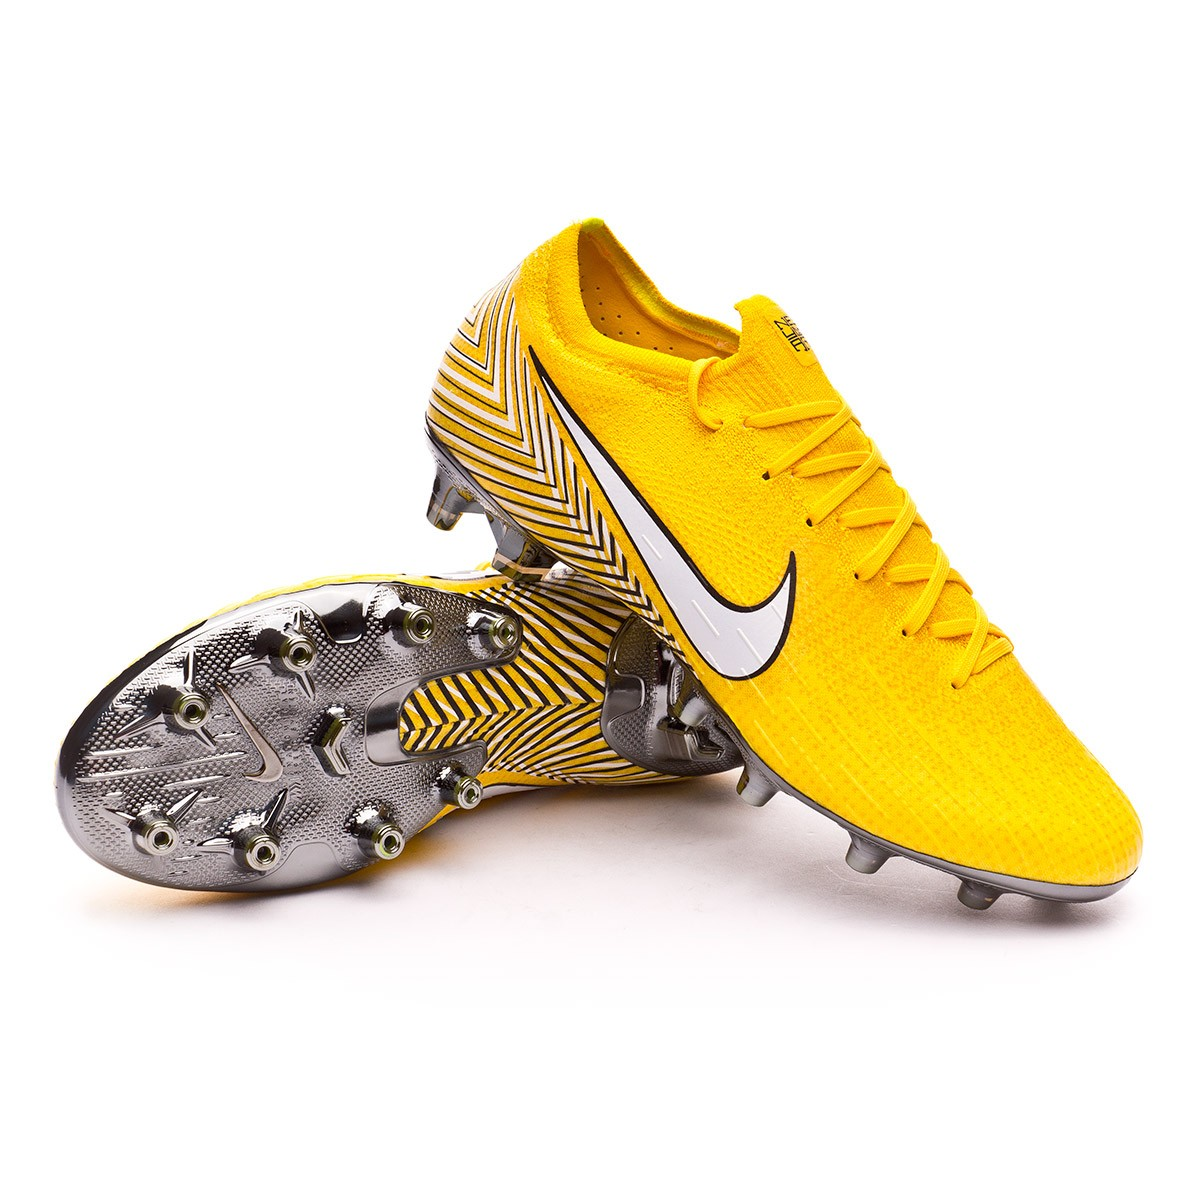 26733ee2a2d8f ... wholesale boot nike mercurial vapor xii elite ag pro neymar yellow  dinamic dcaef 529c2